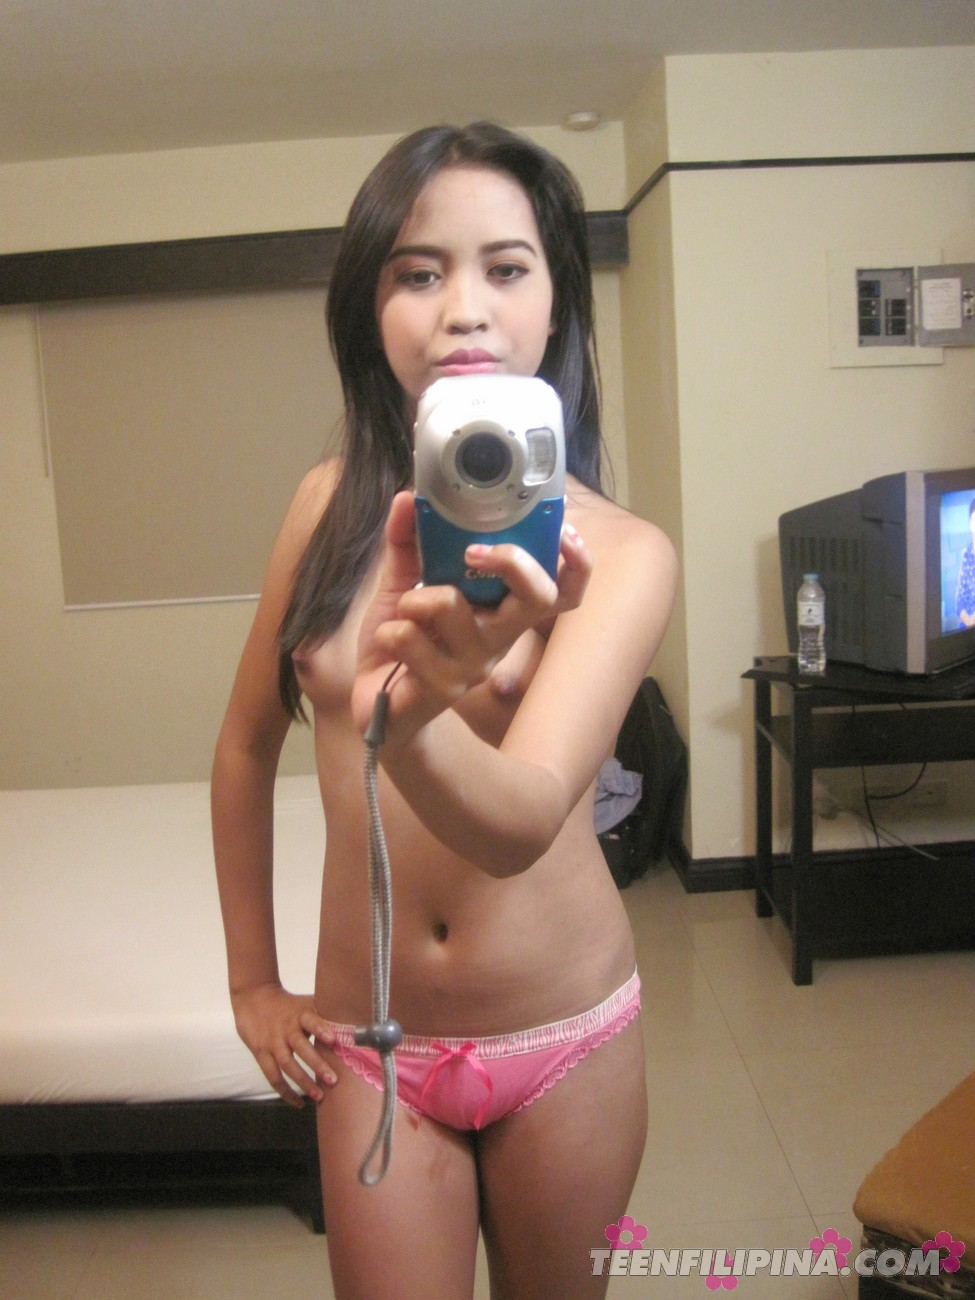 Japanese teen mirror pics nude understand you